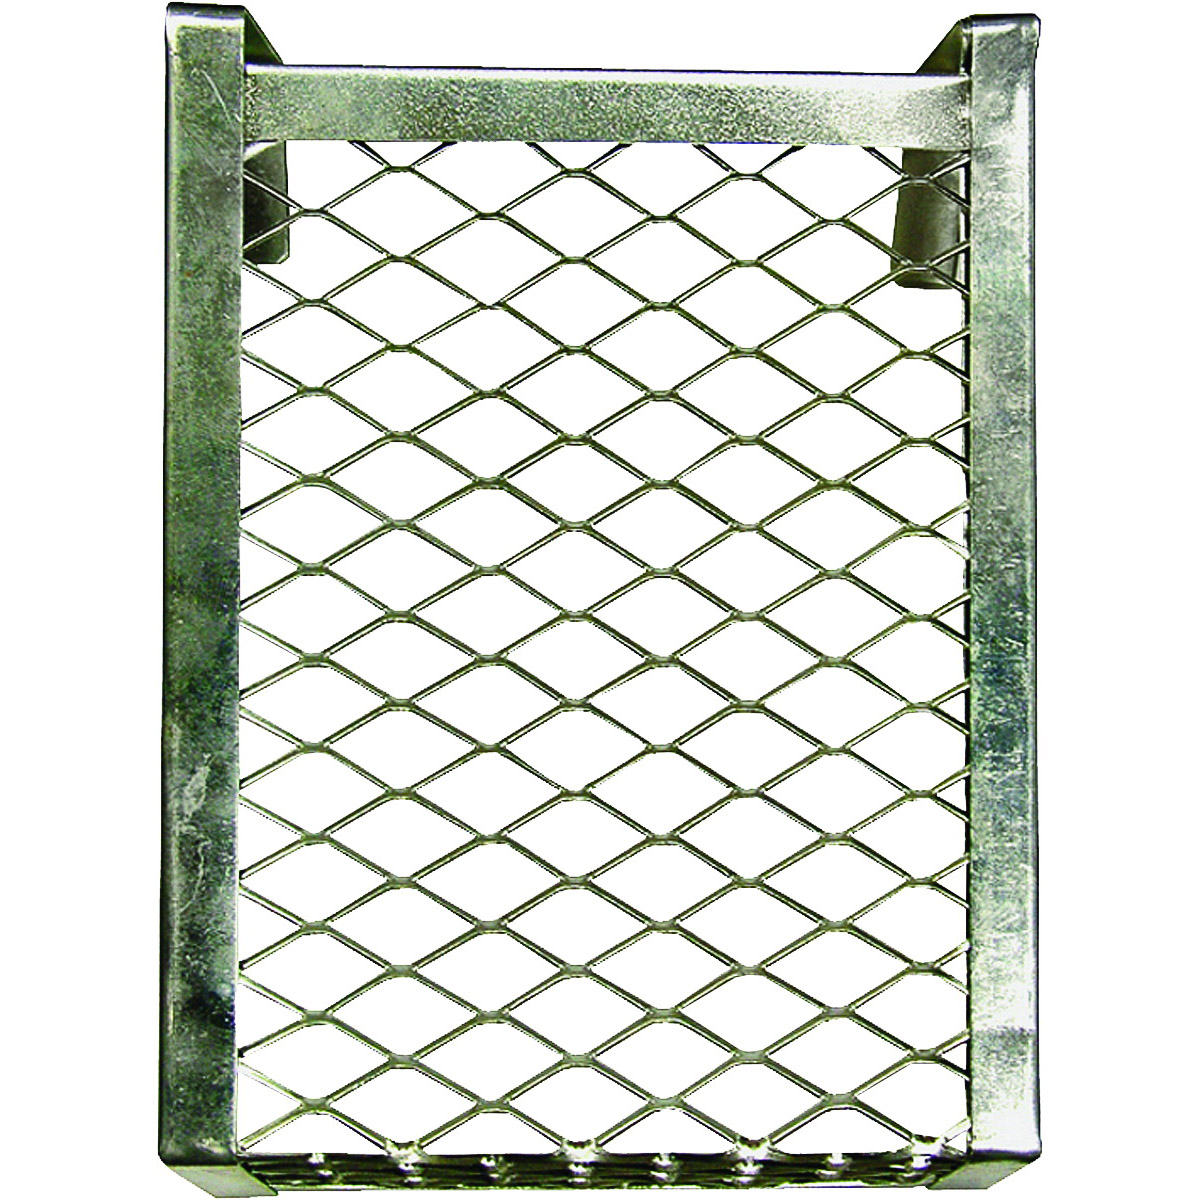 Picture of Linzer RM150 Bucket Grid, Steel, For: 1 gal Can